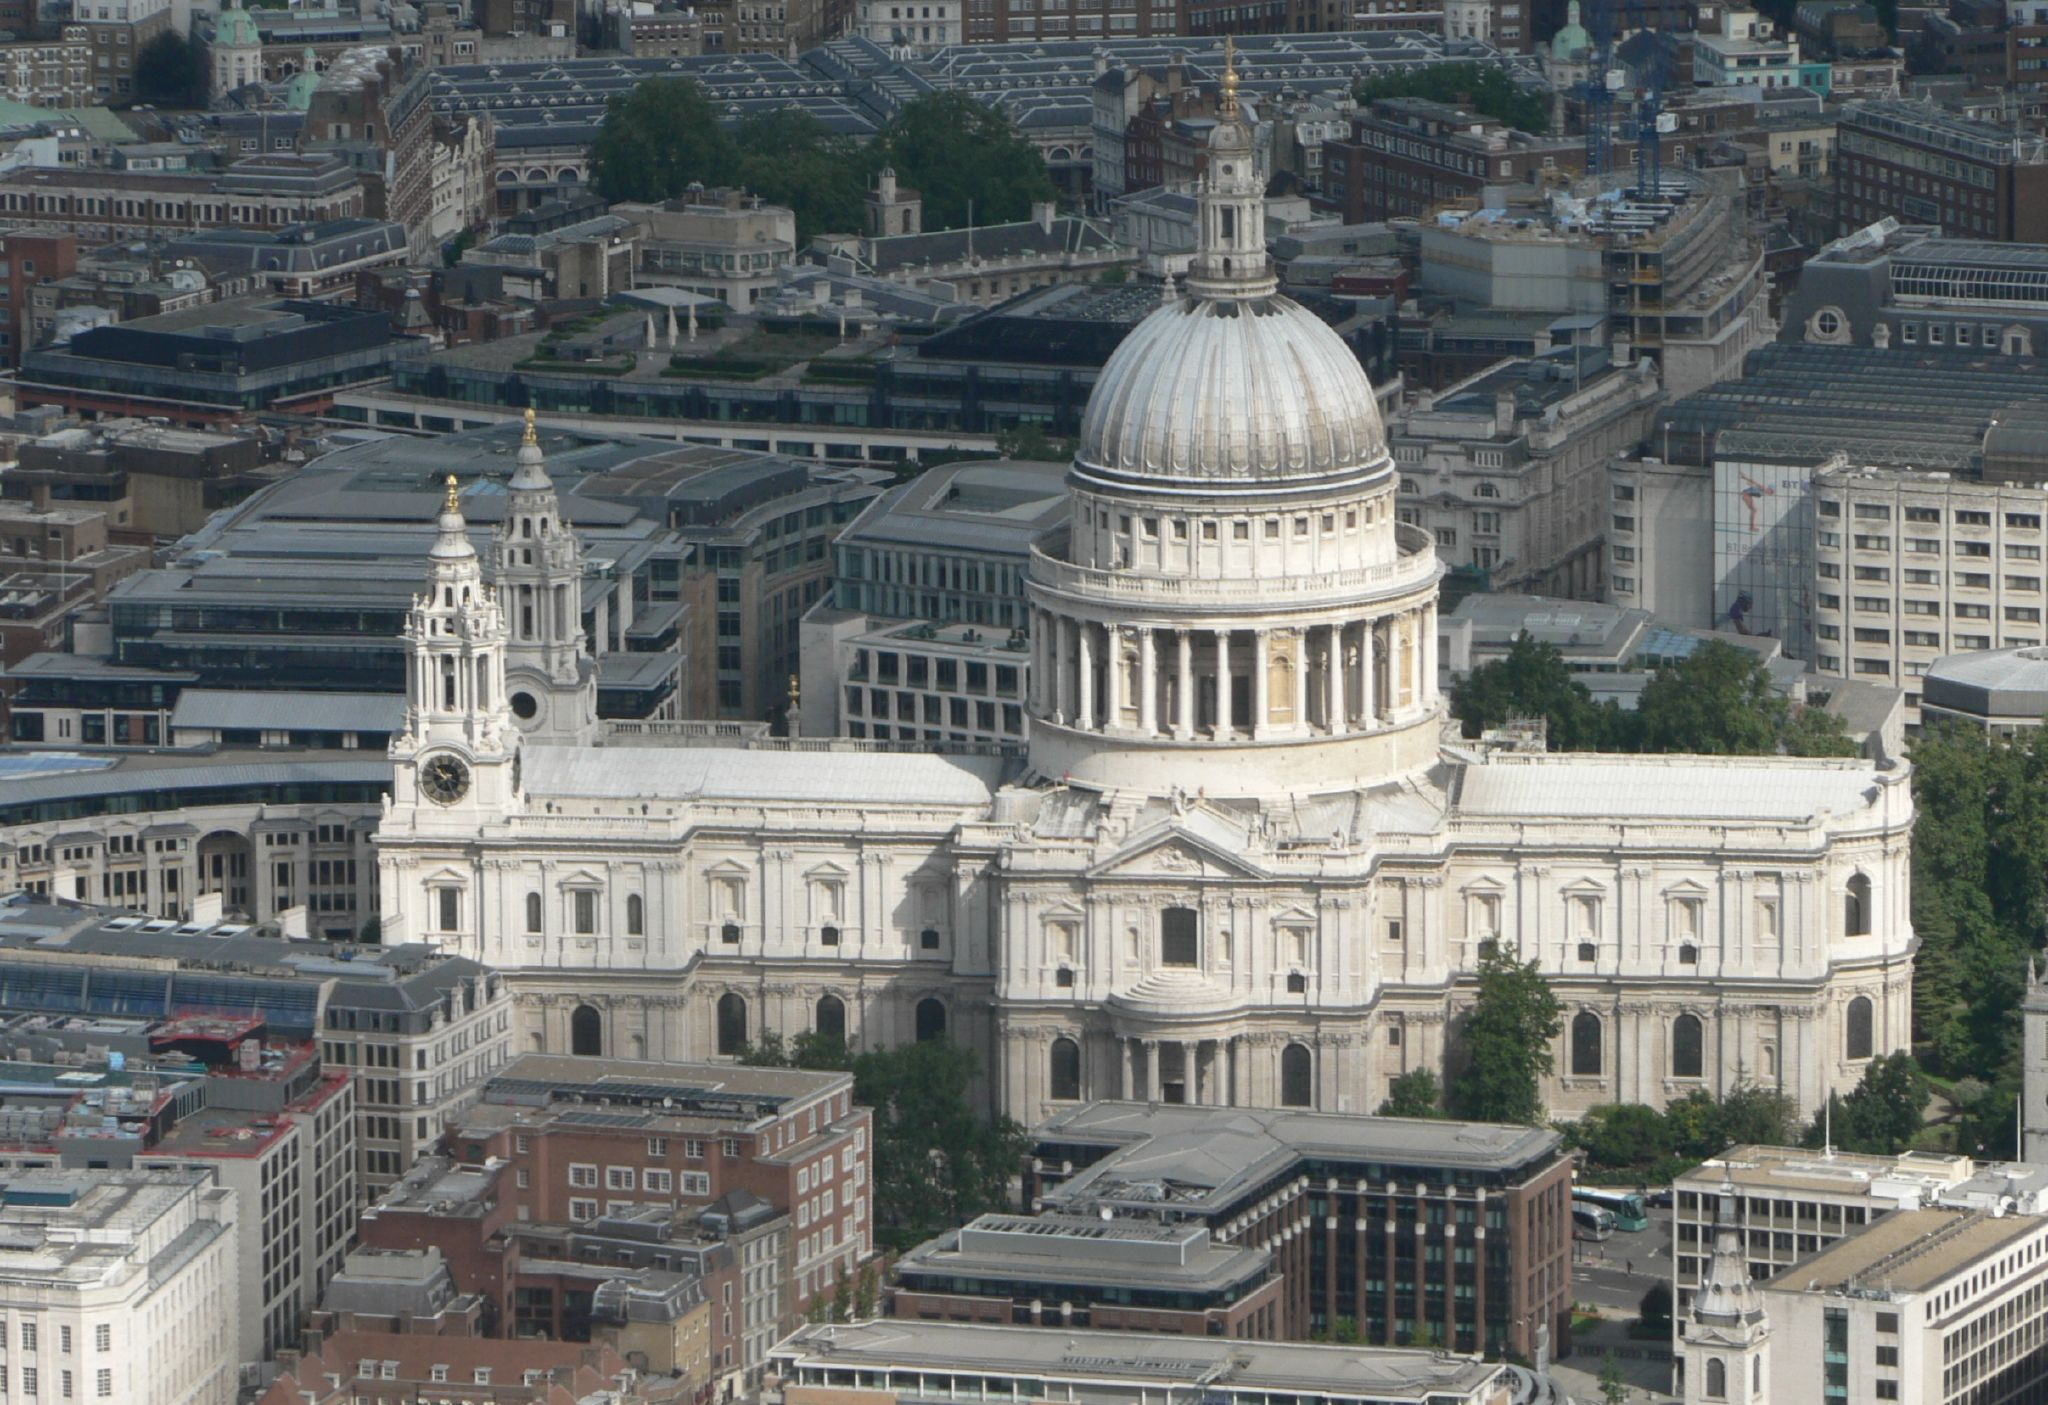 Vue aérienne de la Cathédrale de Saint Paul à Londres - Photo de Mark Fosh